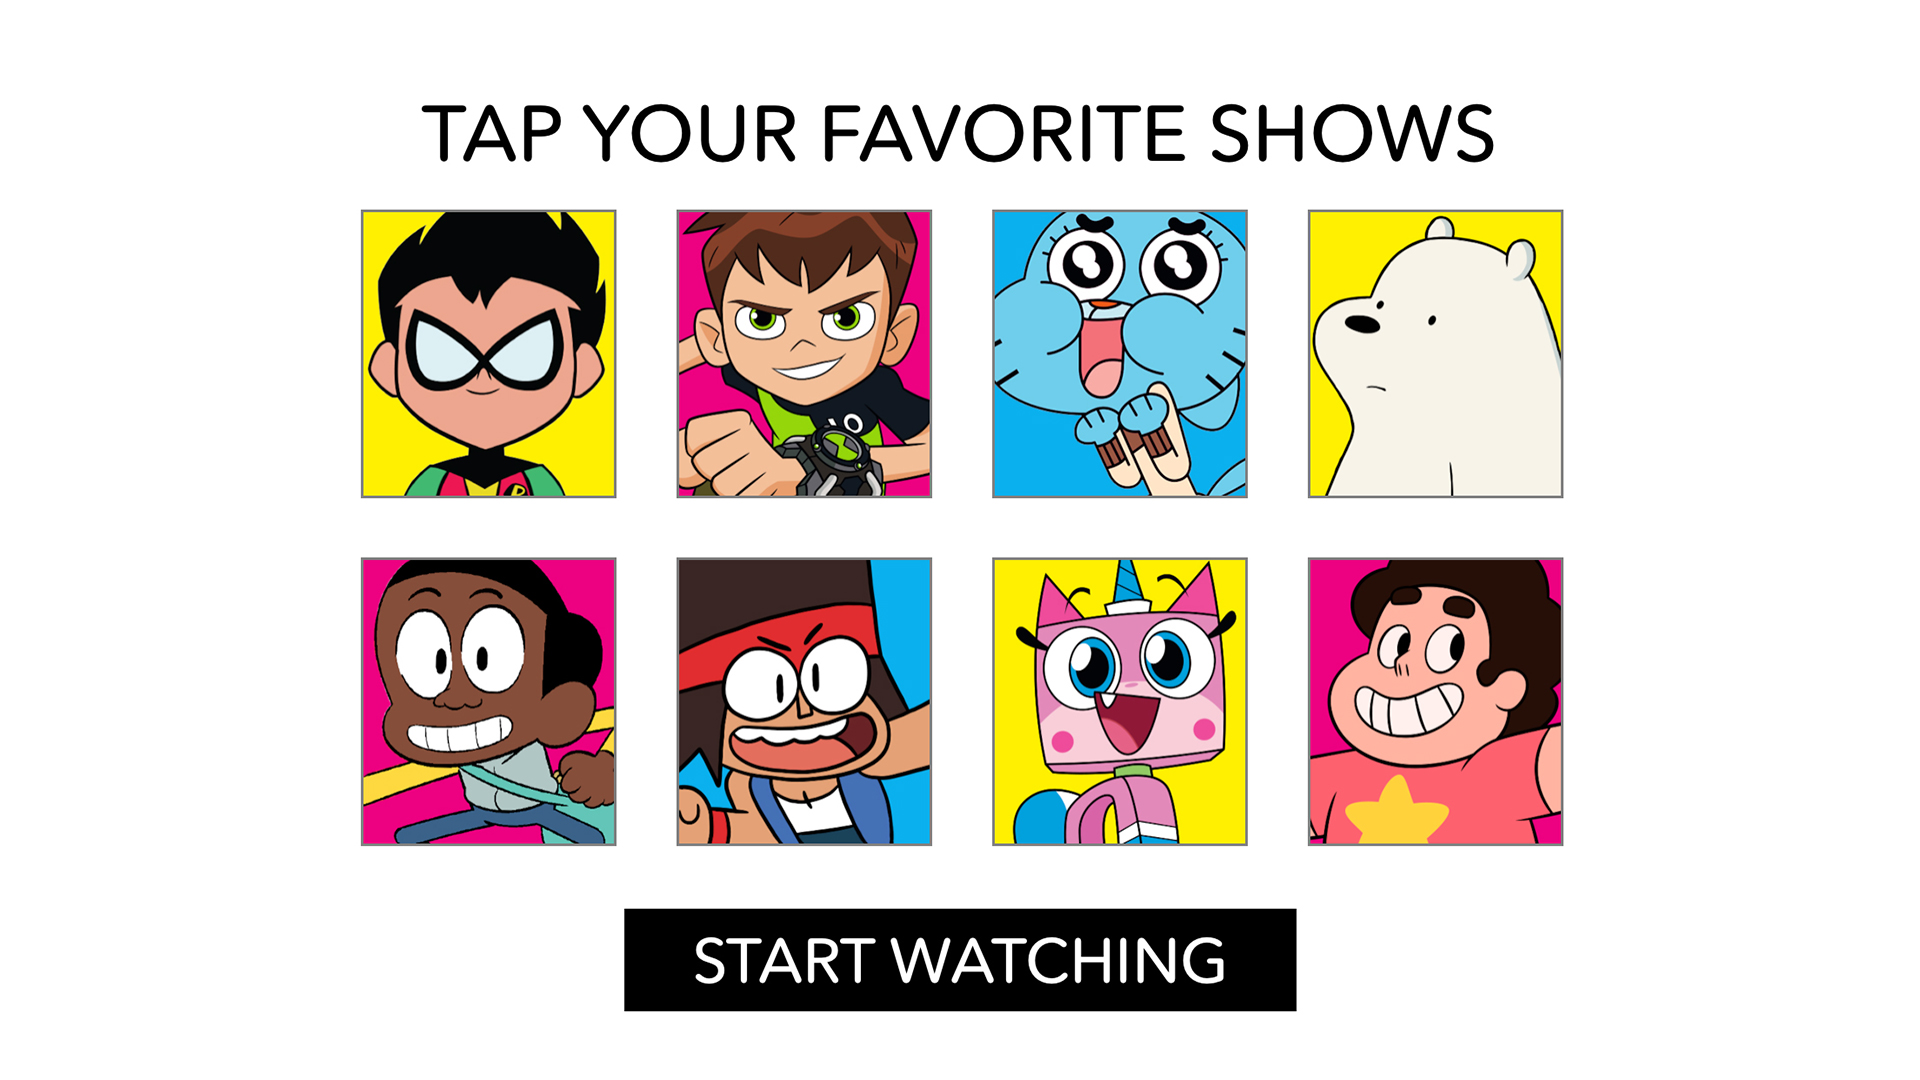 Amazon Com Cartoon Network App Watch Videos Clips And Full Episodes Of Your Favorite Shows Appstore For Android